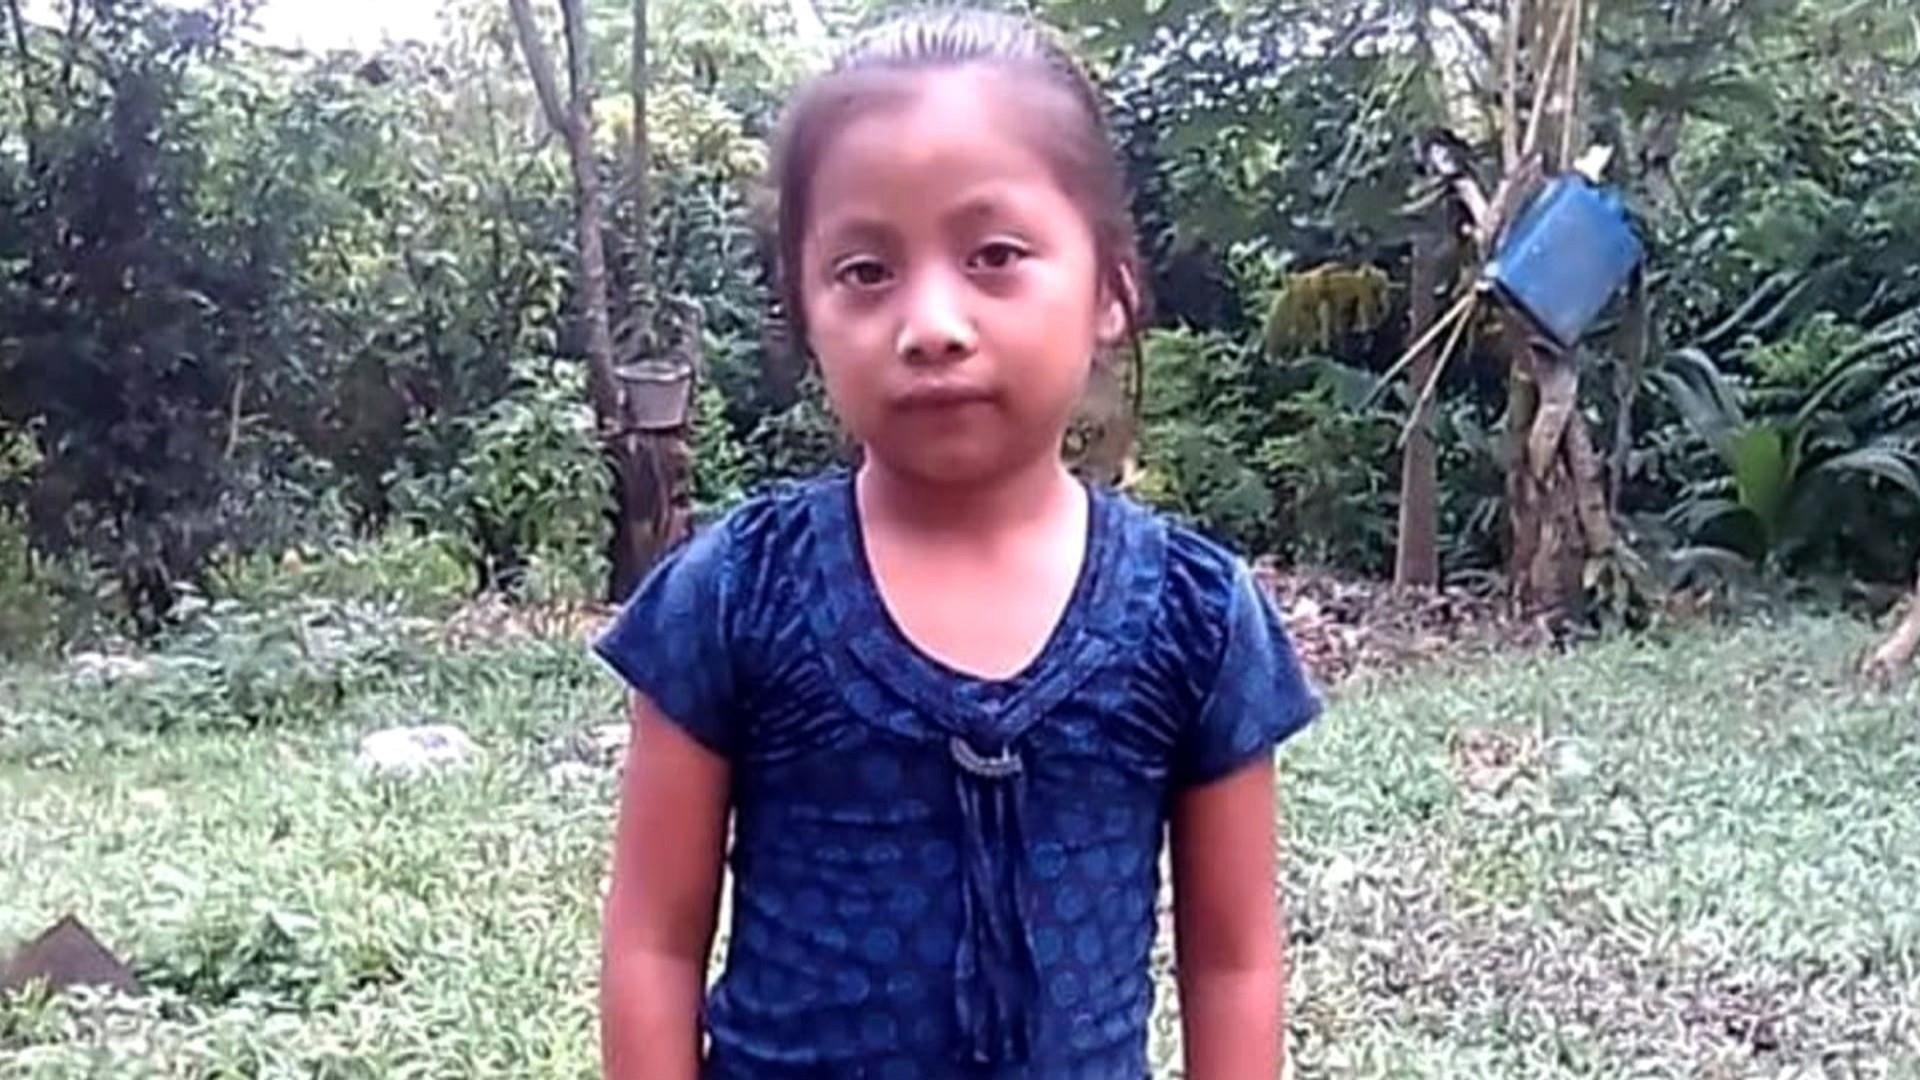 In poor Guatemalan village, mom mourns young daughter who died in Border Patrol custody